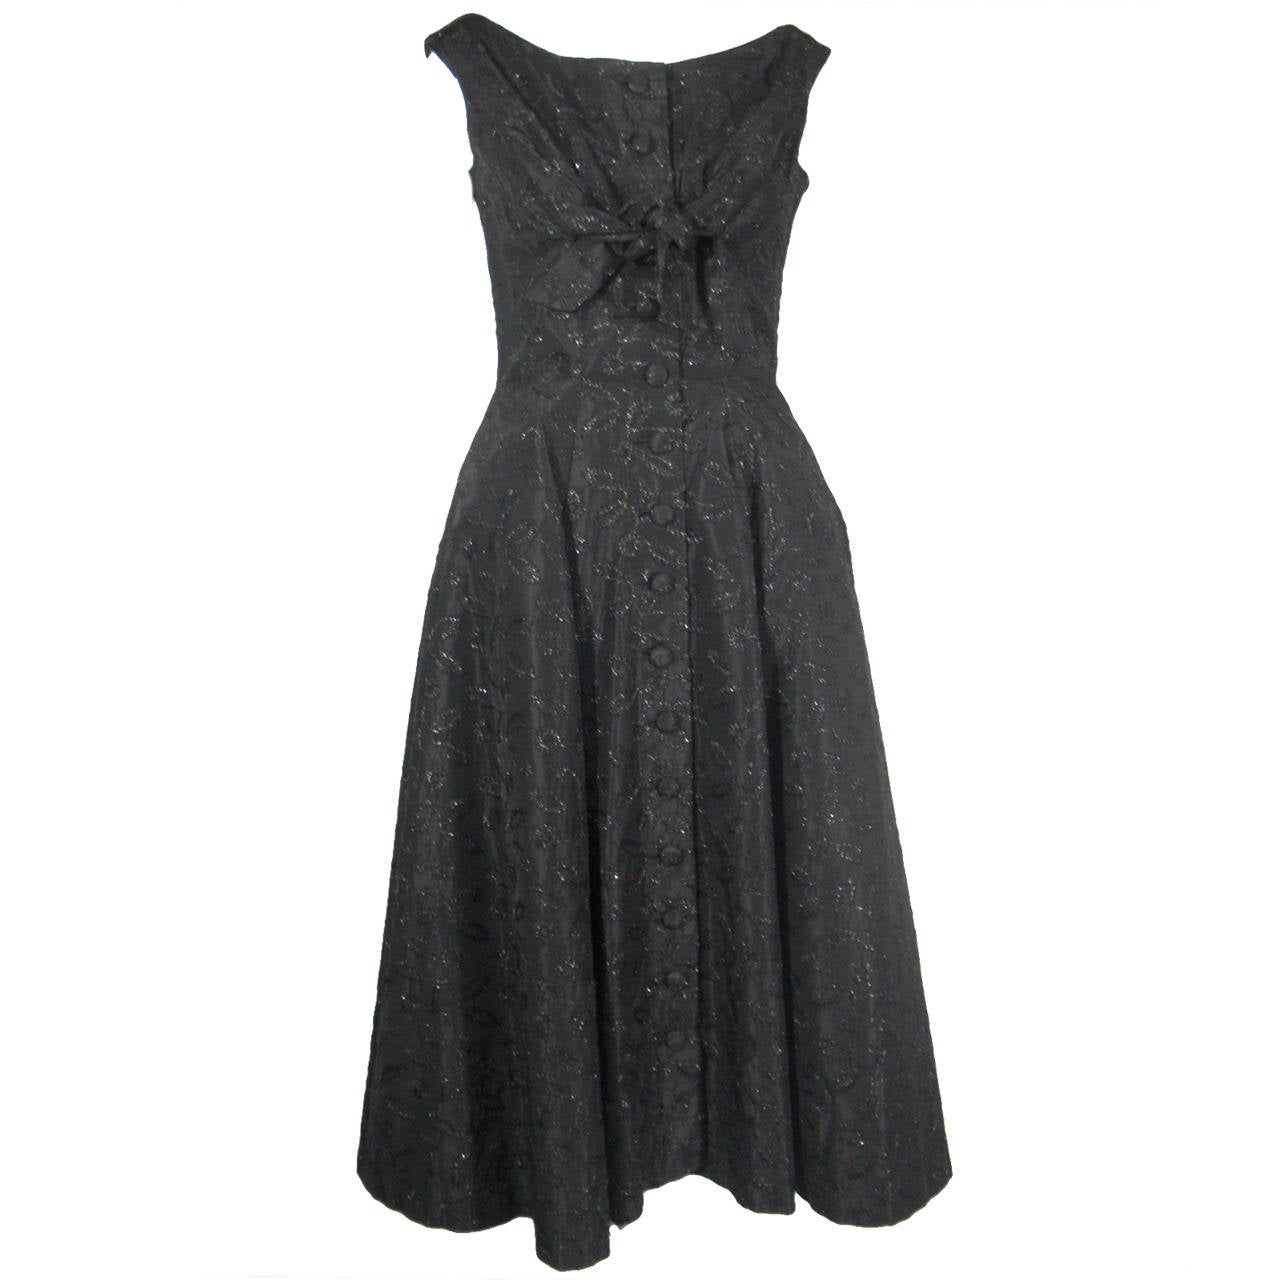 1950s Suzy Perette Black Button Front Dress with Embroidered Flowers